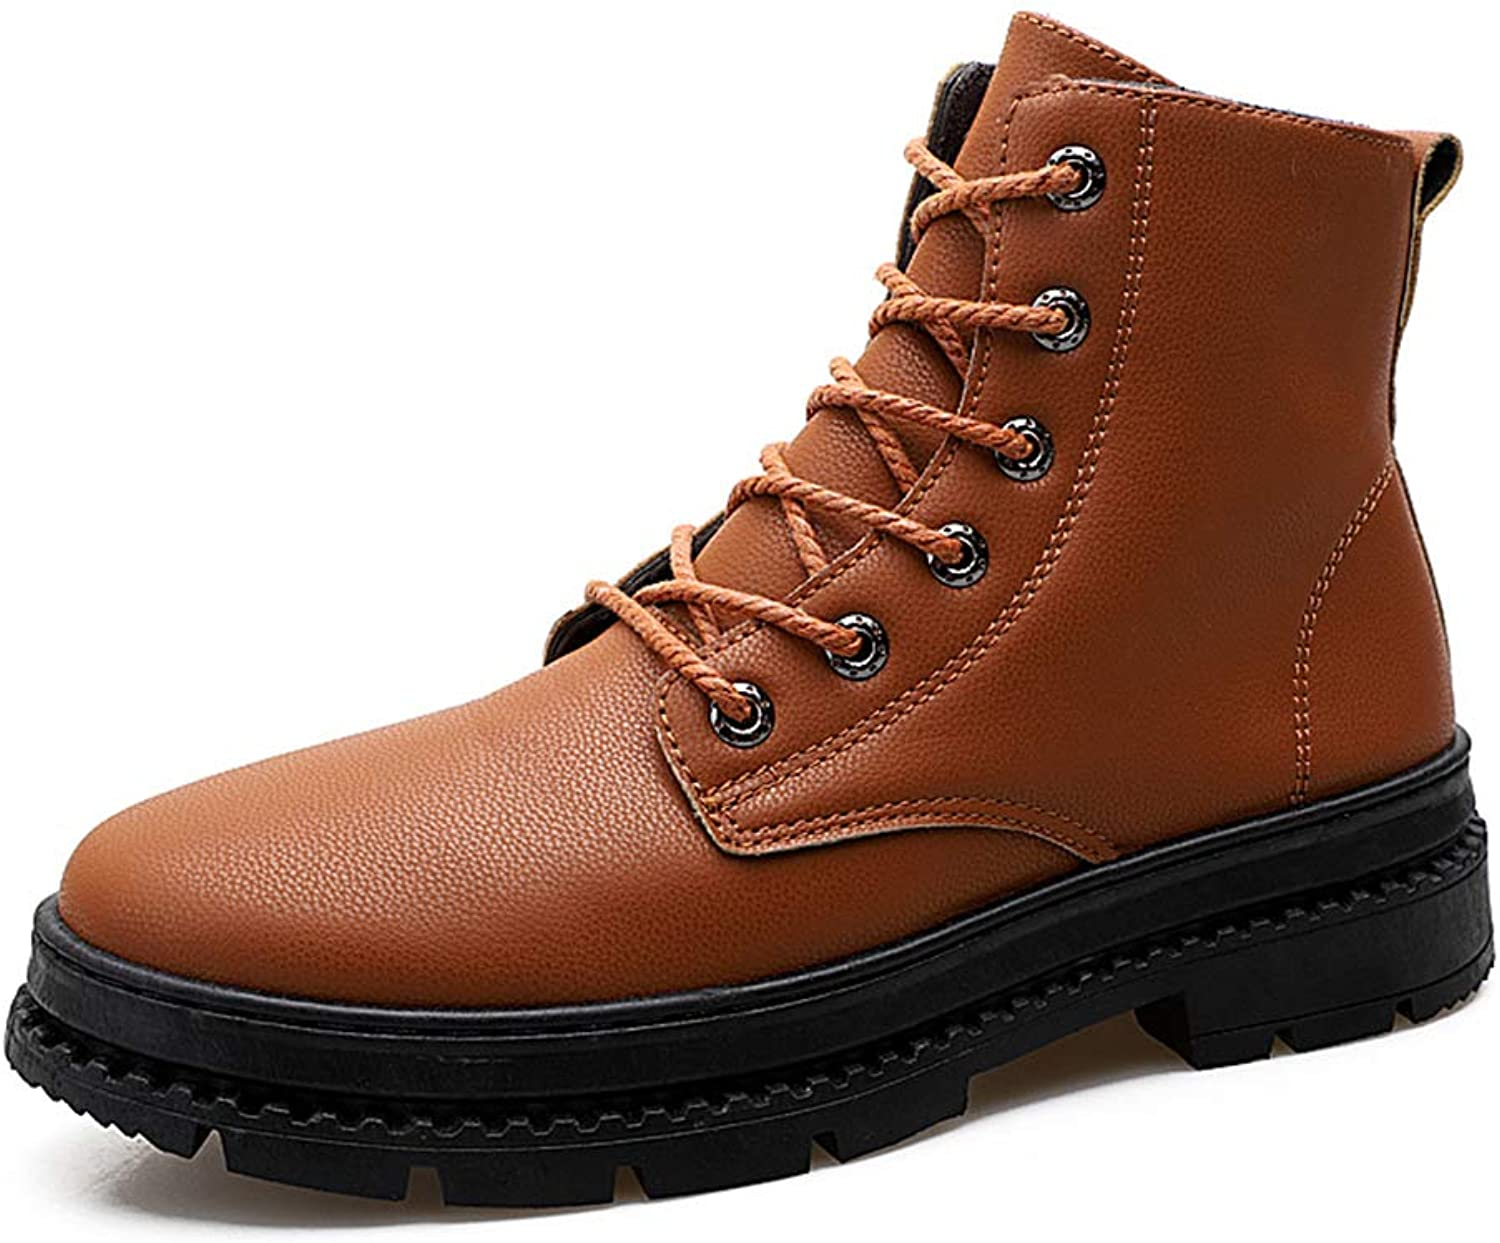 Men's Martin Boots High-Top Casual shoes Lace Up Outdoor Hiking shoes Cycling shoes Fashion Daily Walking shoes bluee Black Brown,Brown,41